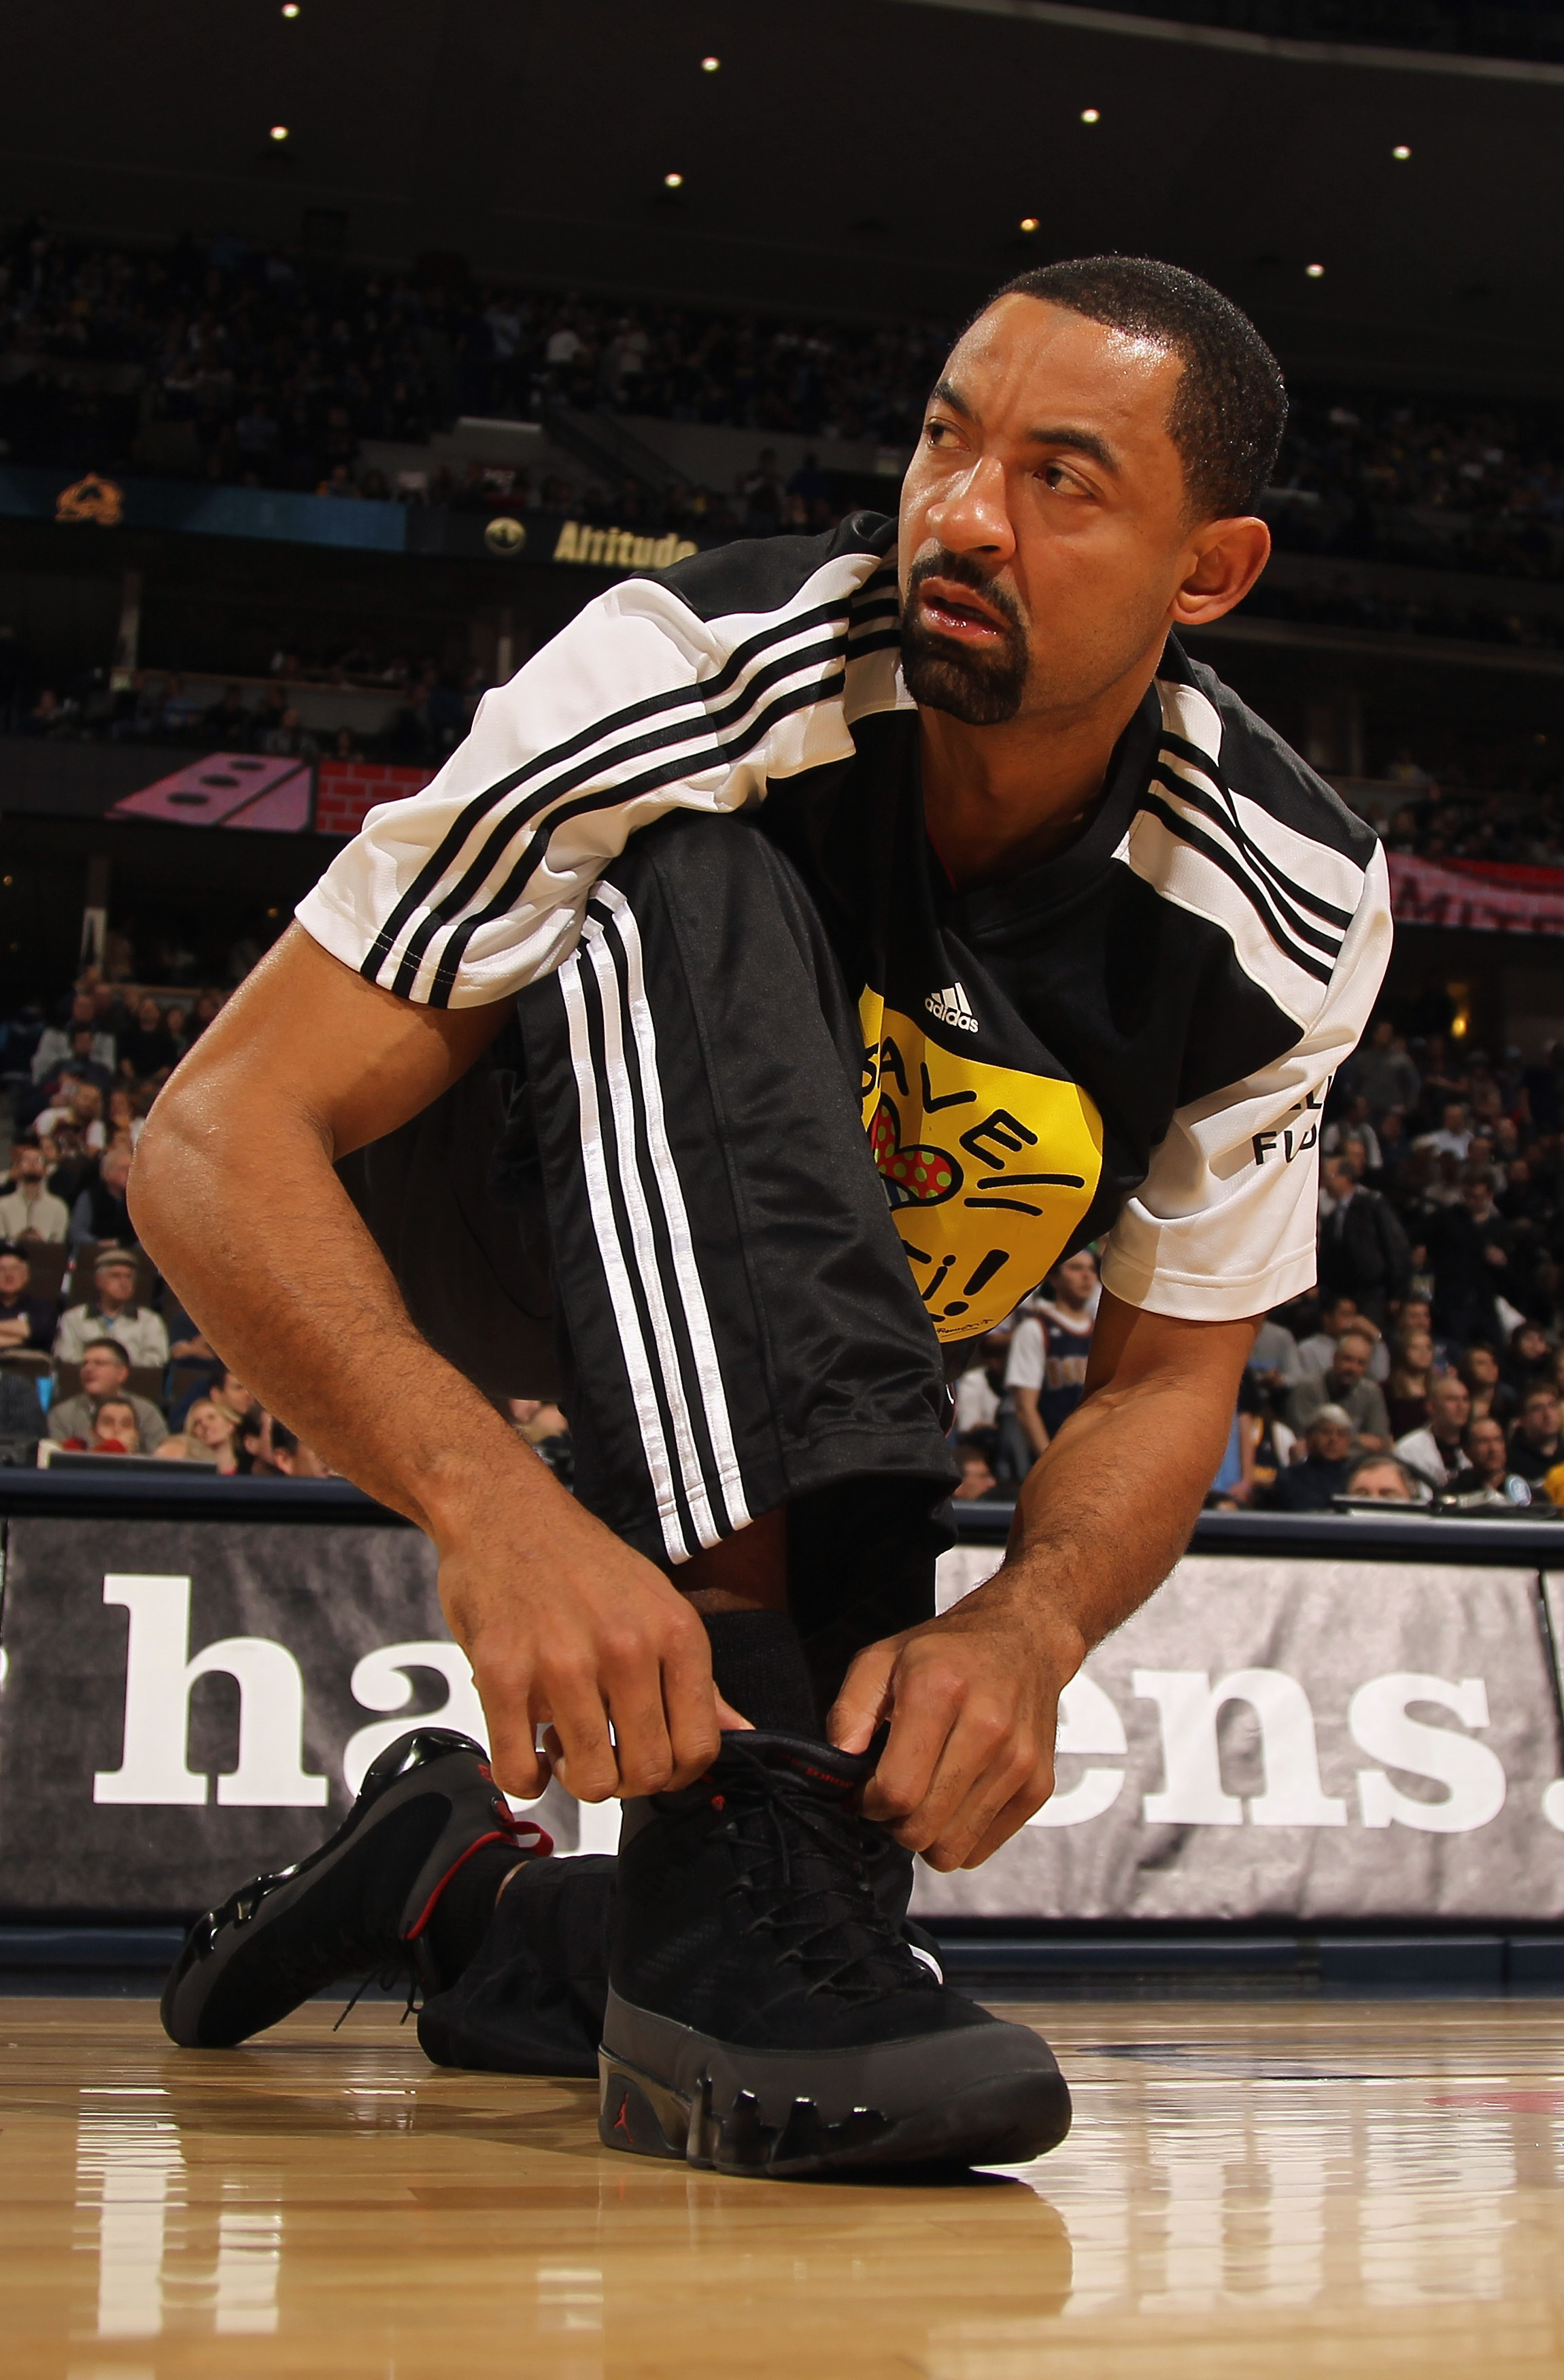 DENVER, CO - JANUARY 13:  Juwan Howard #5 of the Miami Heat ties his shoe laces during warm up prior to facing the Denver Nuggets at the Pepsi Center on January 13, 2011 in Denver, Colorado. The Nuggets defeated the Heat 130-102. NOTE TO USER: User expres